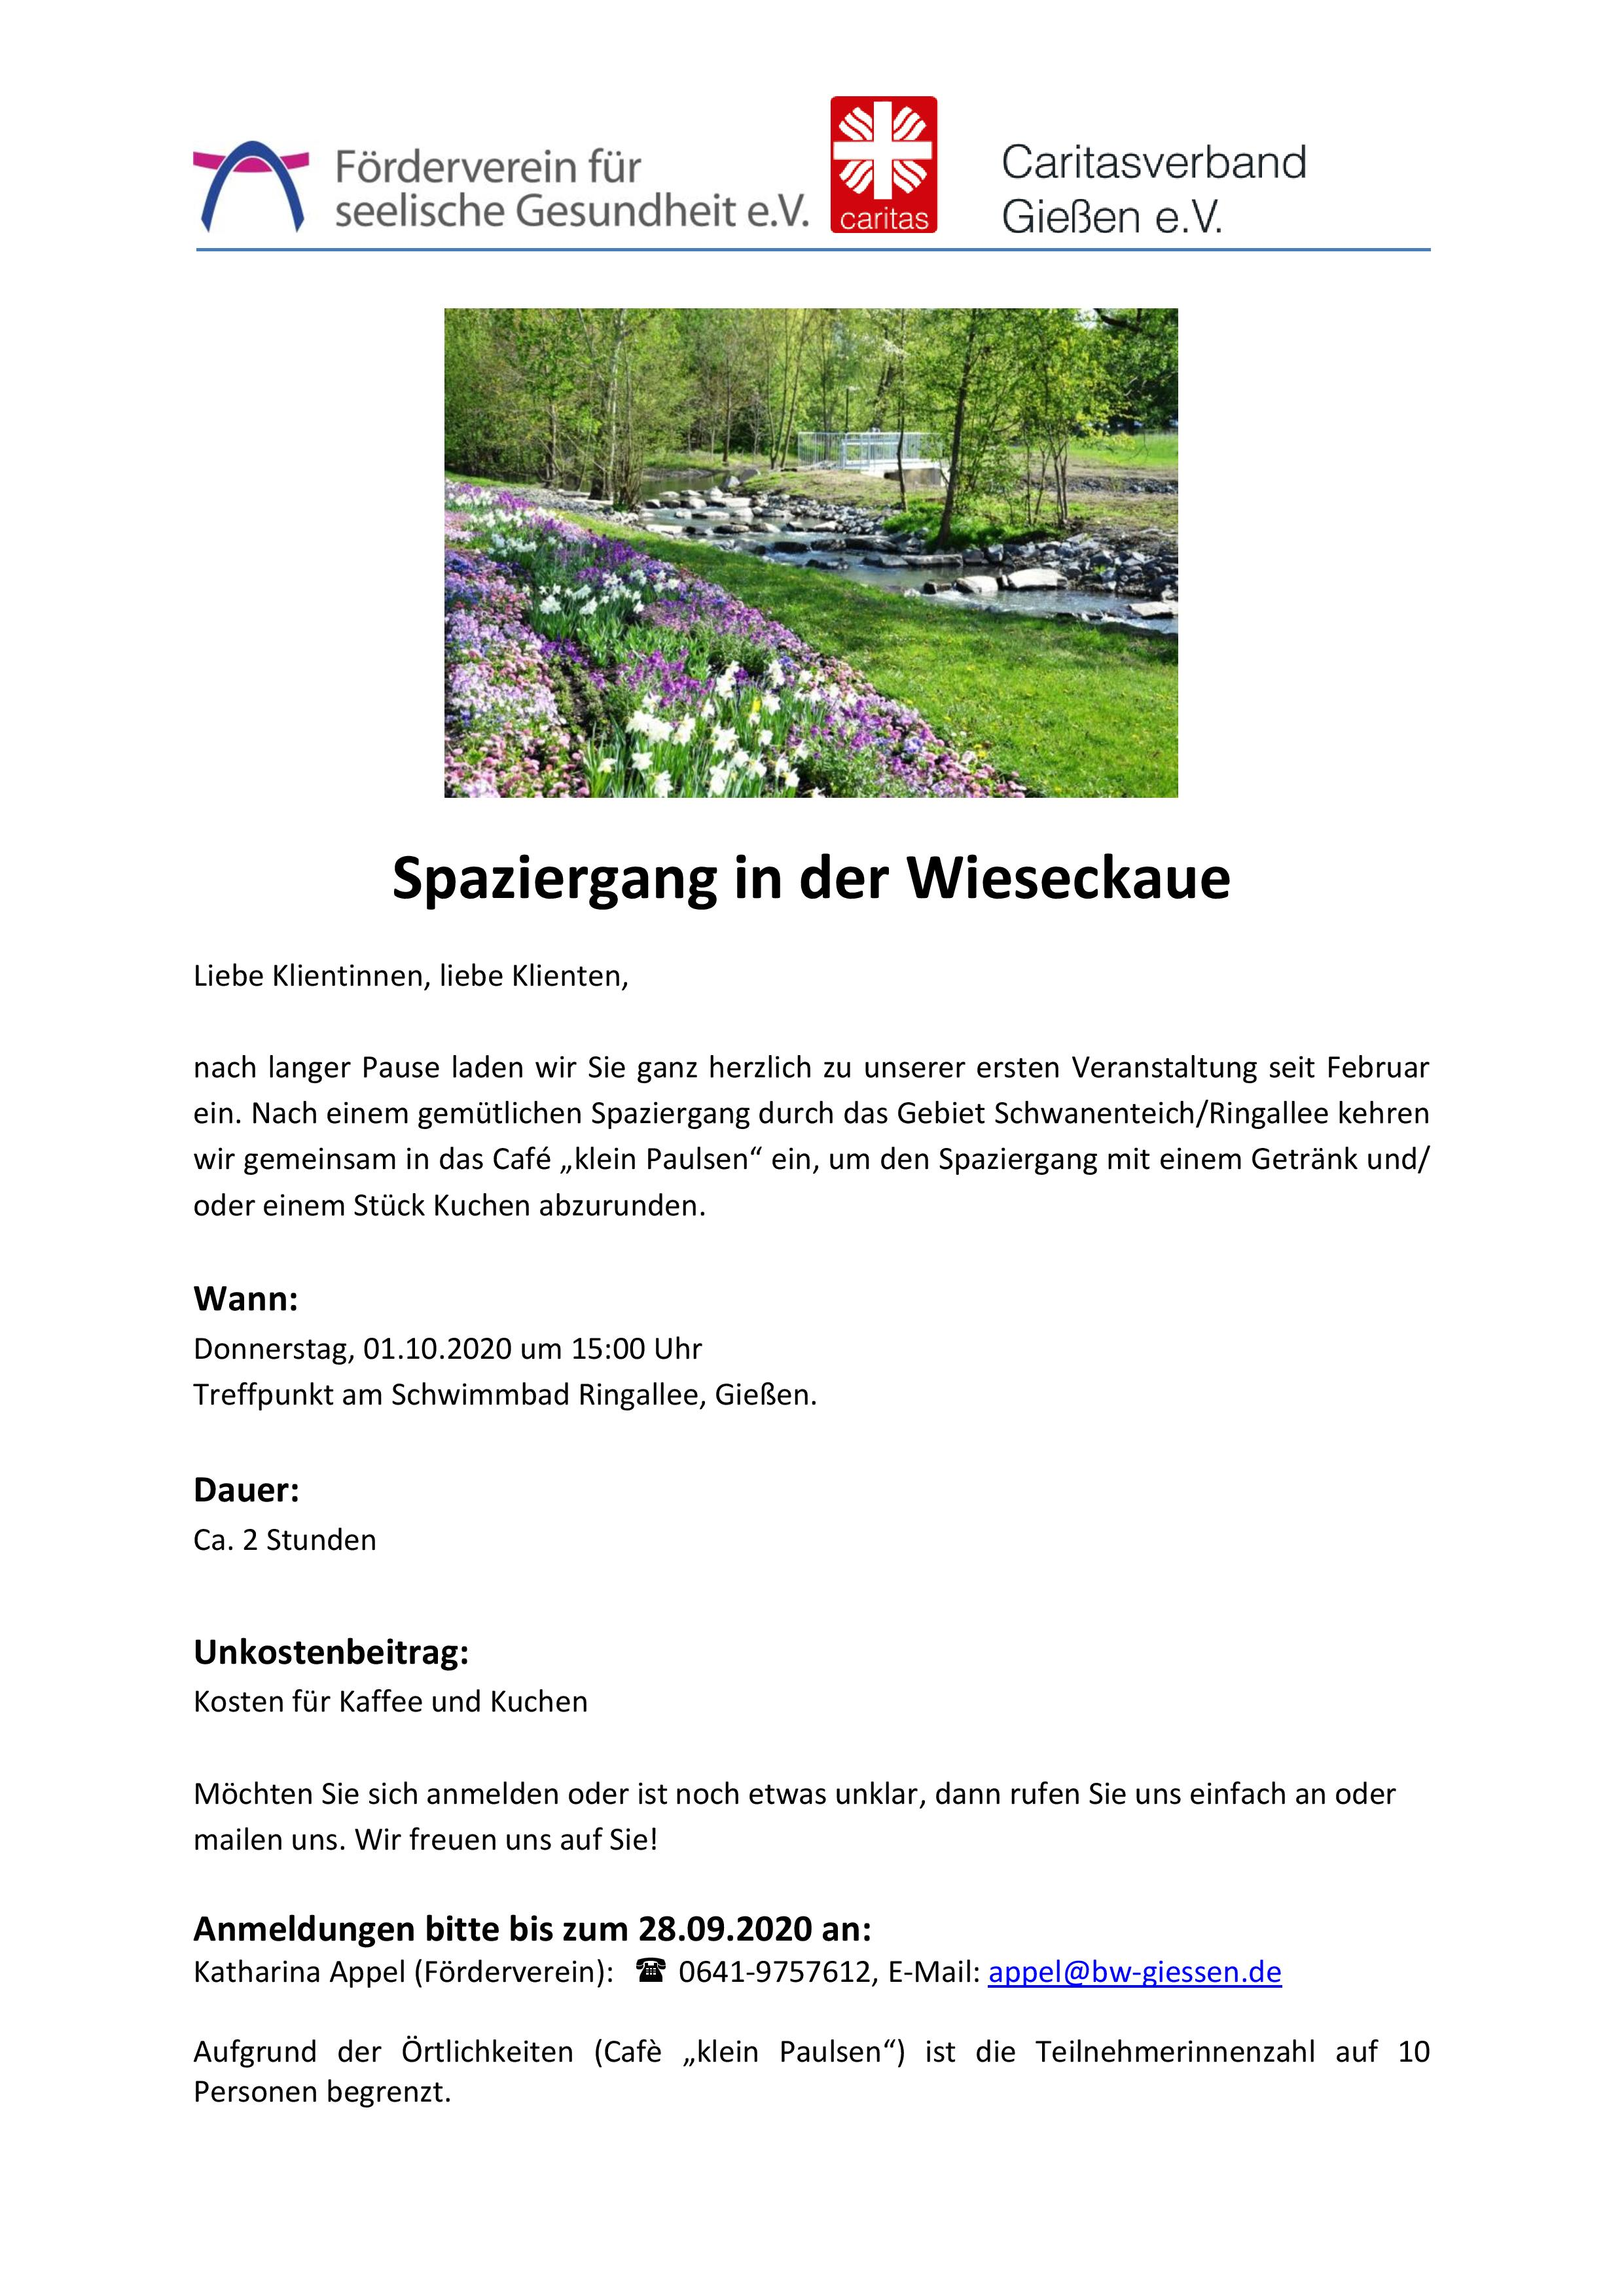 Spaziergang Wieseckaue page 001